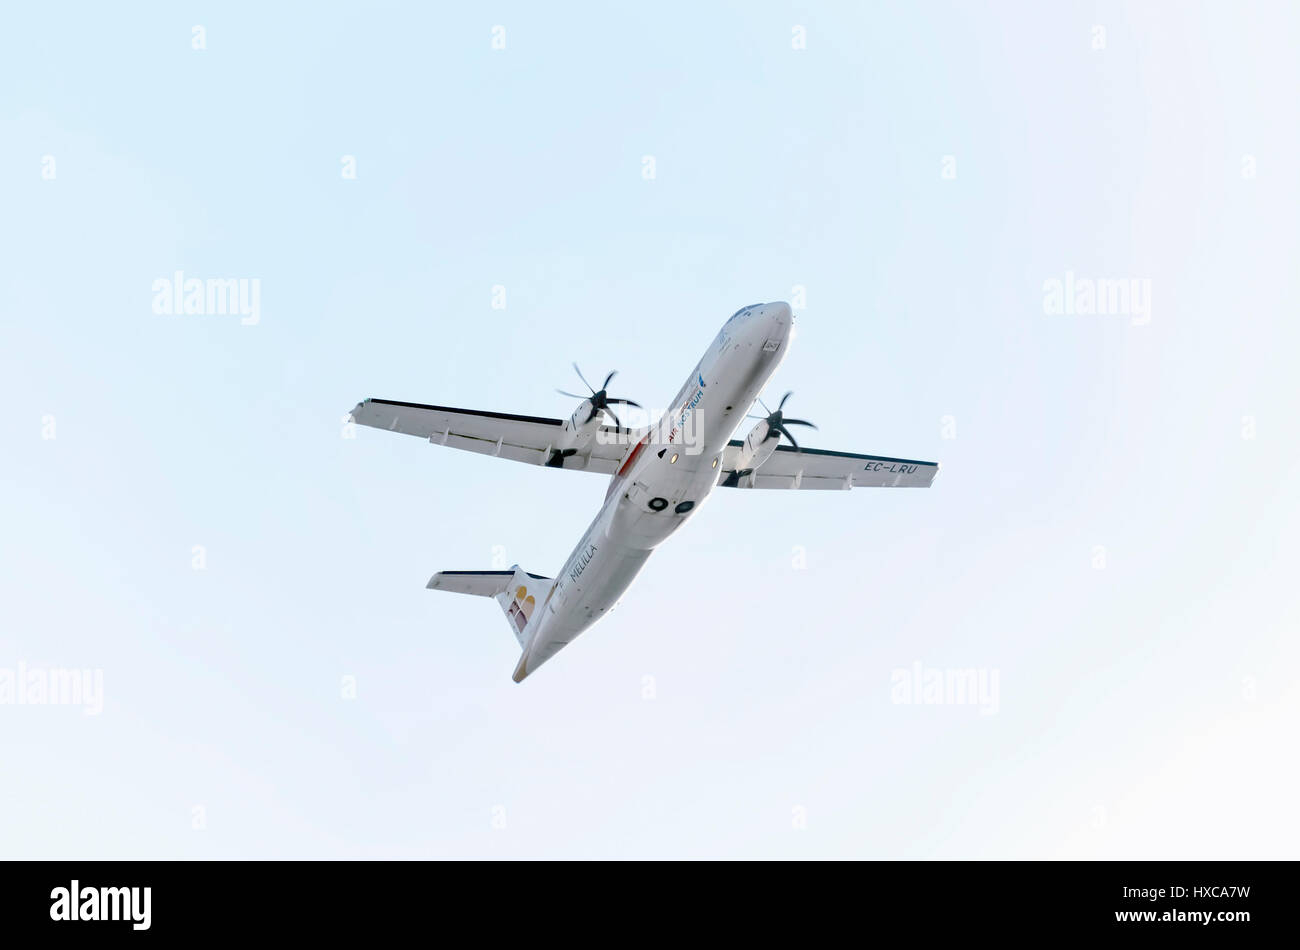 Plane ATR 72 600, of Air Nostrum airline, is taking off from Madrid - Barajas, Adolfo Suarez airport. Twin engines - Stock Image